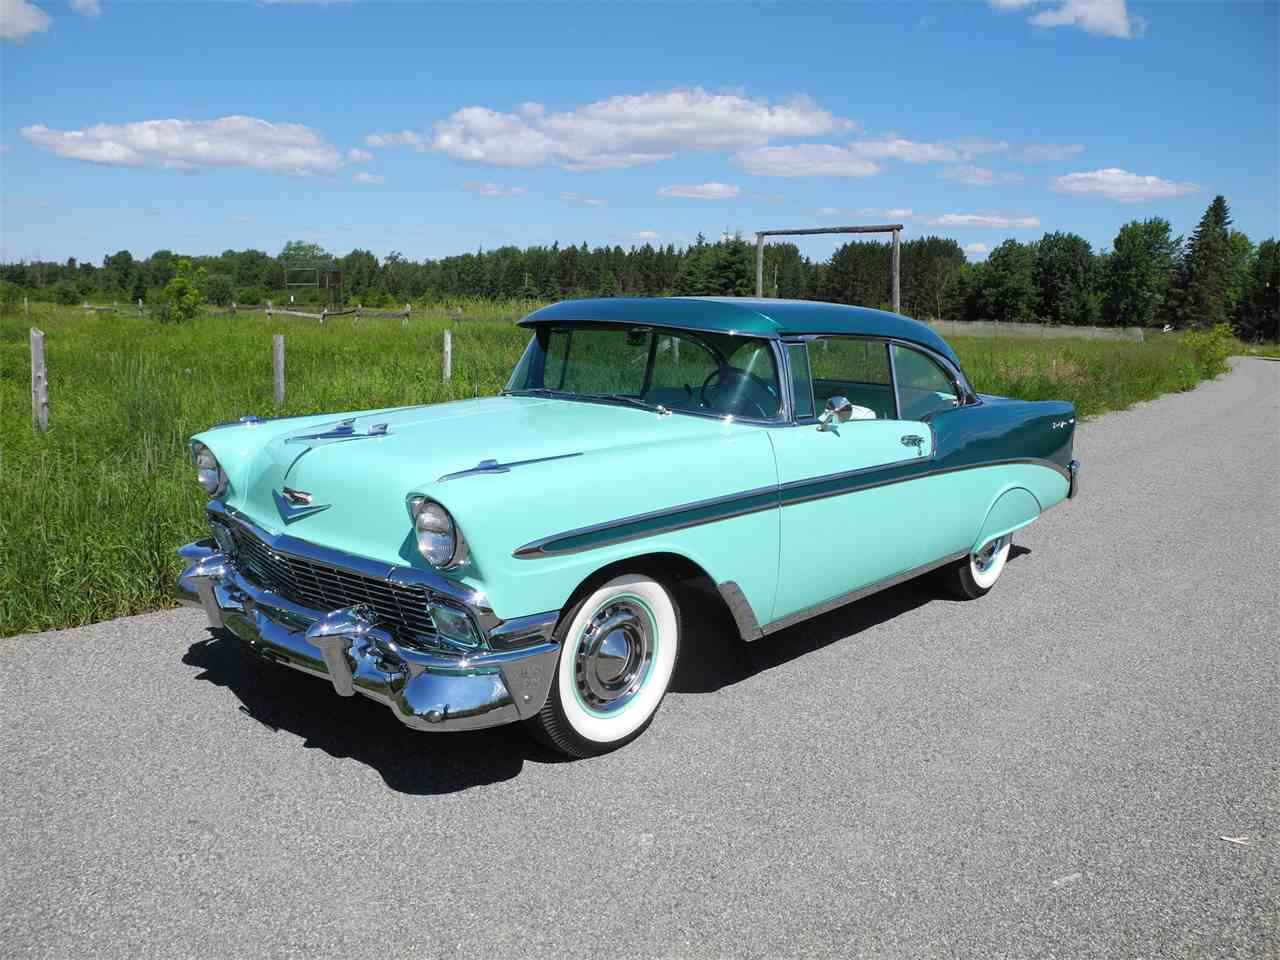 1956 chevrolet bel air for sale classic car liquidators - 1956 Chevrolet Bel Air For Sale Cc 1011968